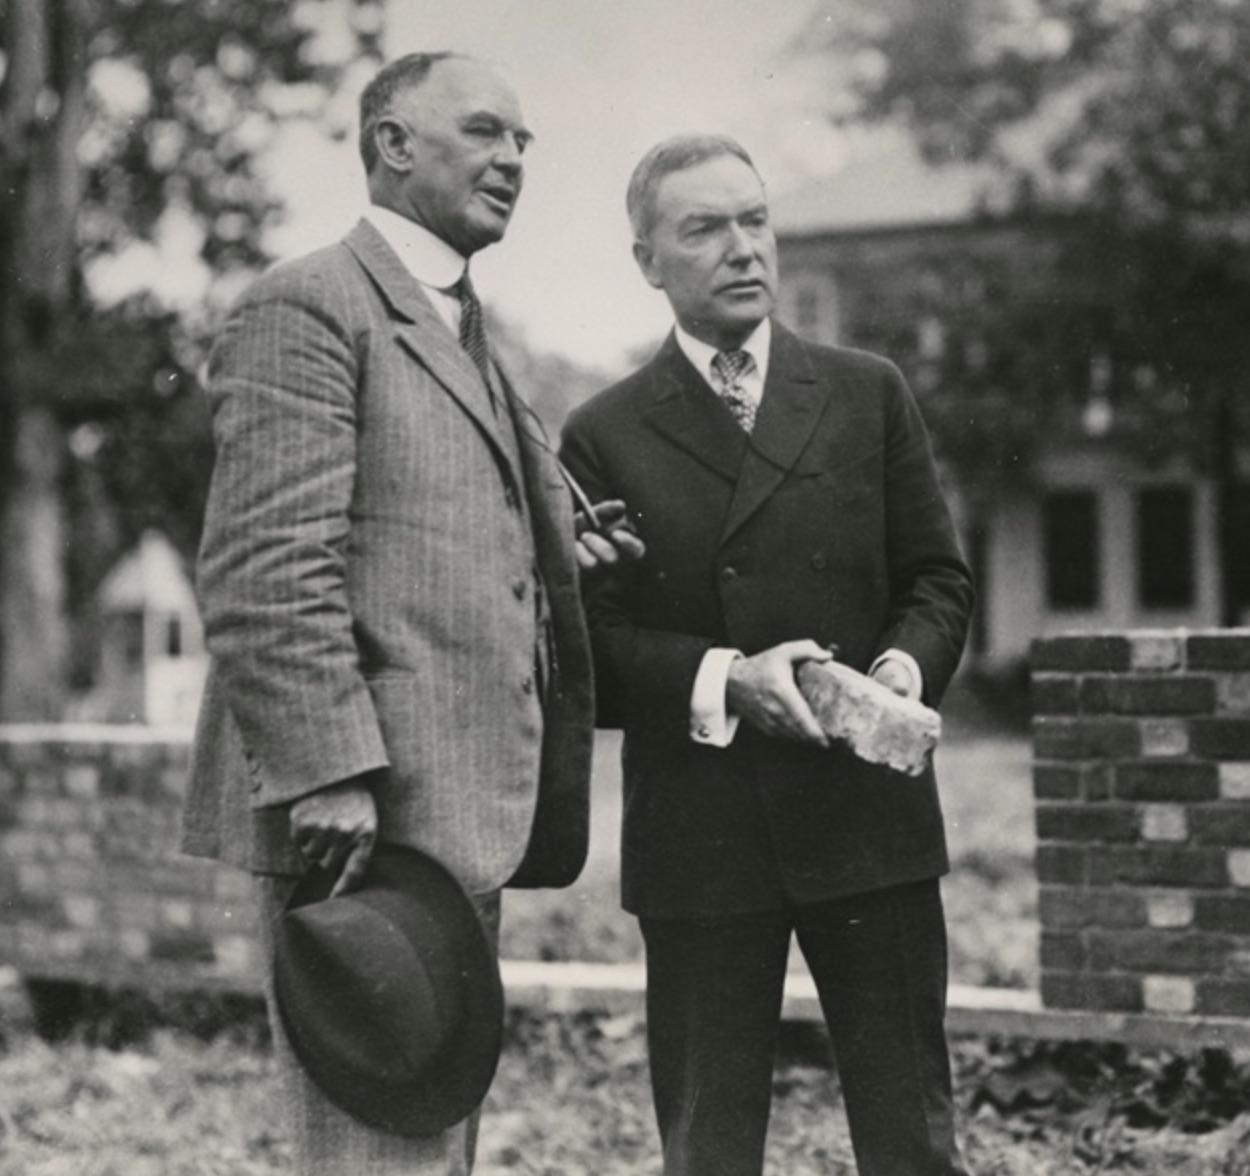 Dr. W.A.R. Goodwin, left, and John D. Rockefeller, Jr., discussing plans for the Williamsburg restoration, 1928. Photo: The Colonial Williamsburg Foundation. Courtesy of the Rockefeller Archive Center, WilliamsburgVisitor